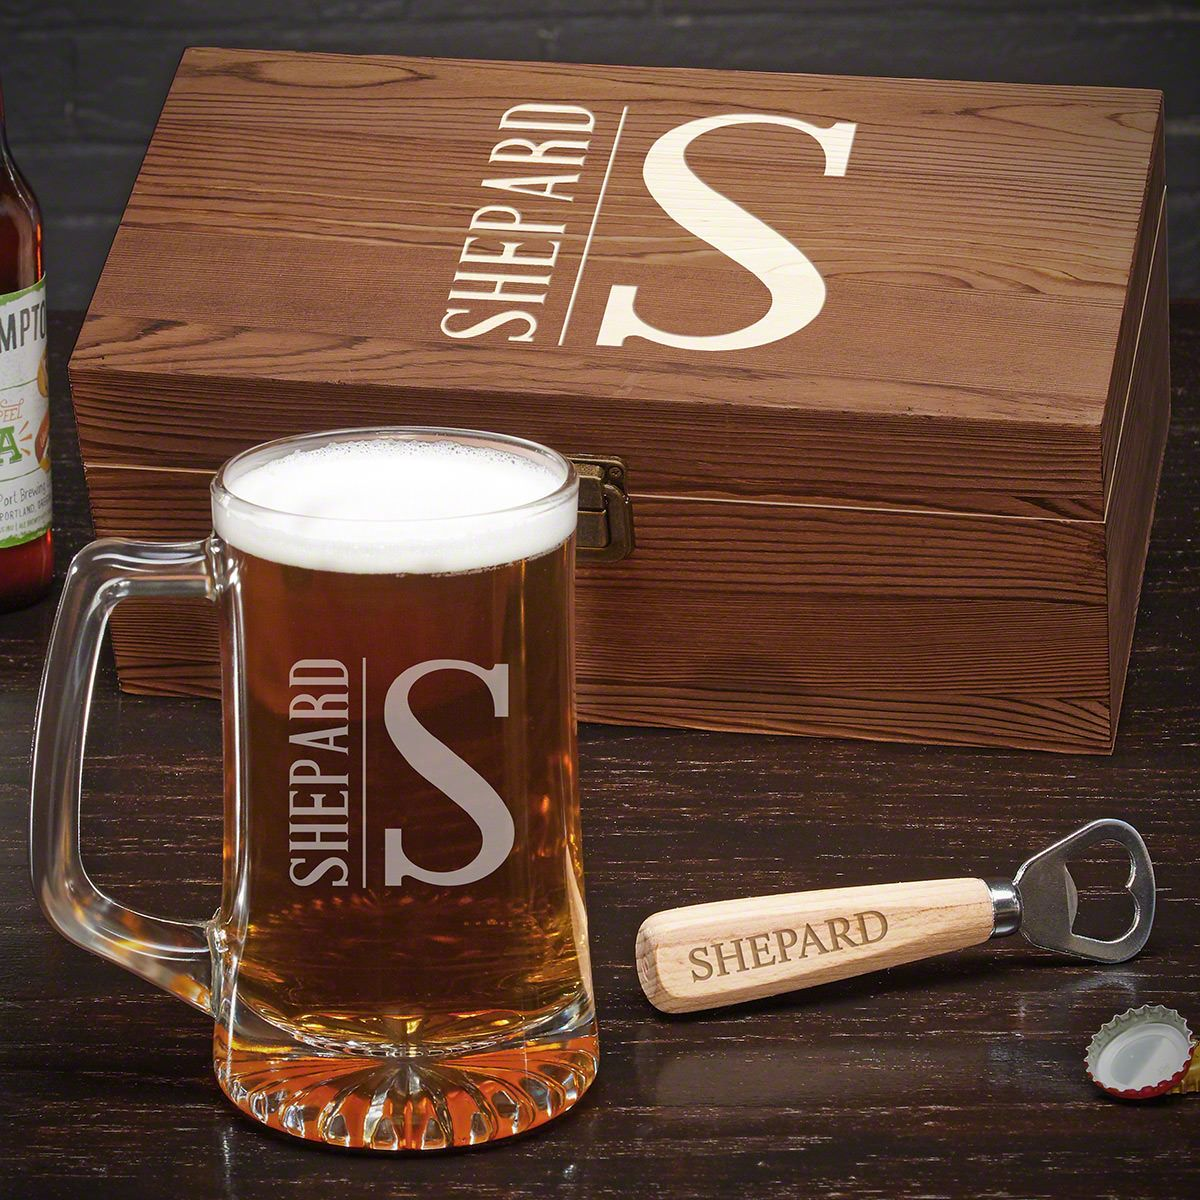 Elton Personalized Box Beer Mug Gift Set